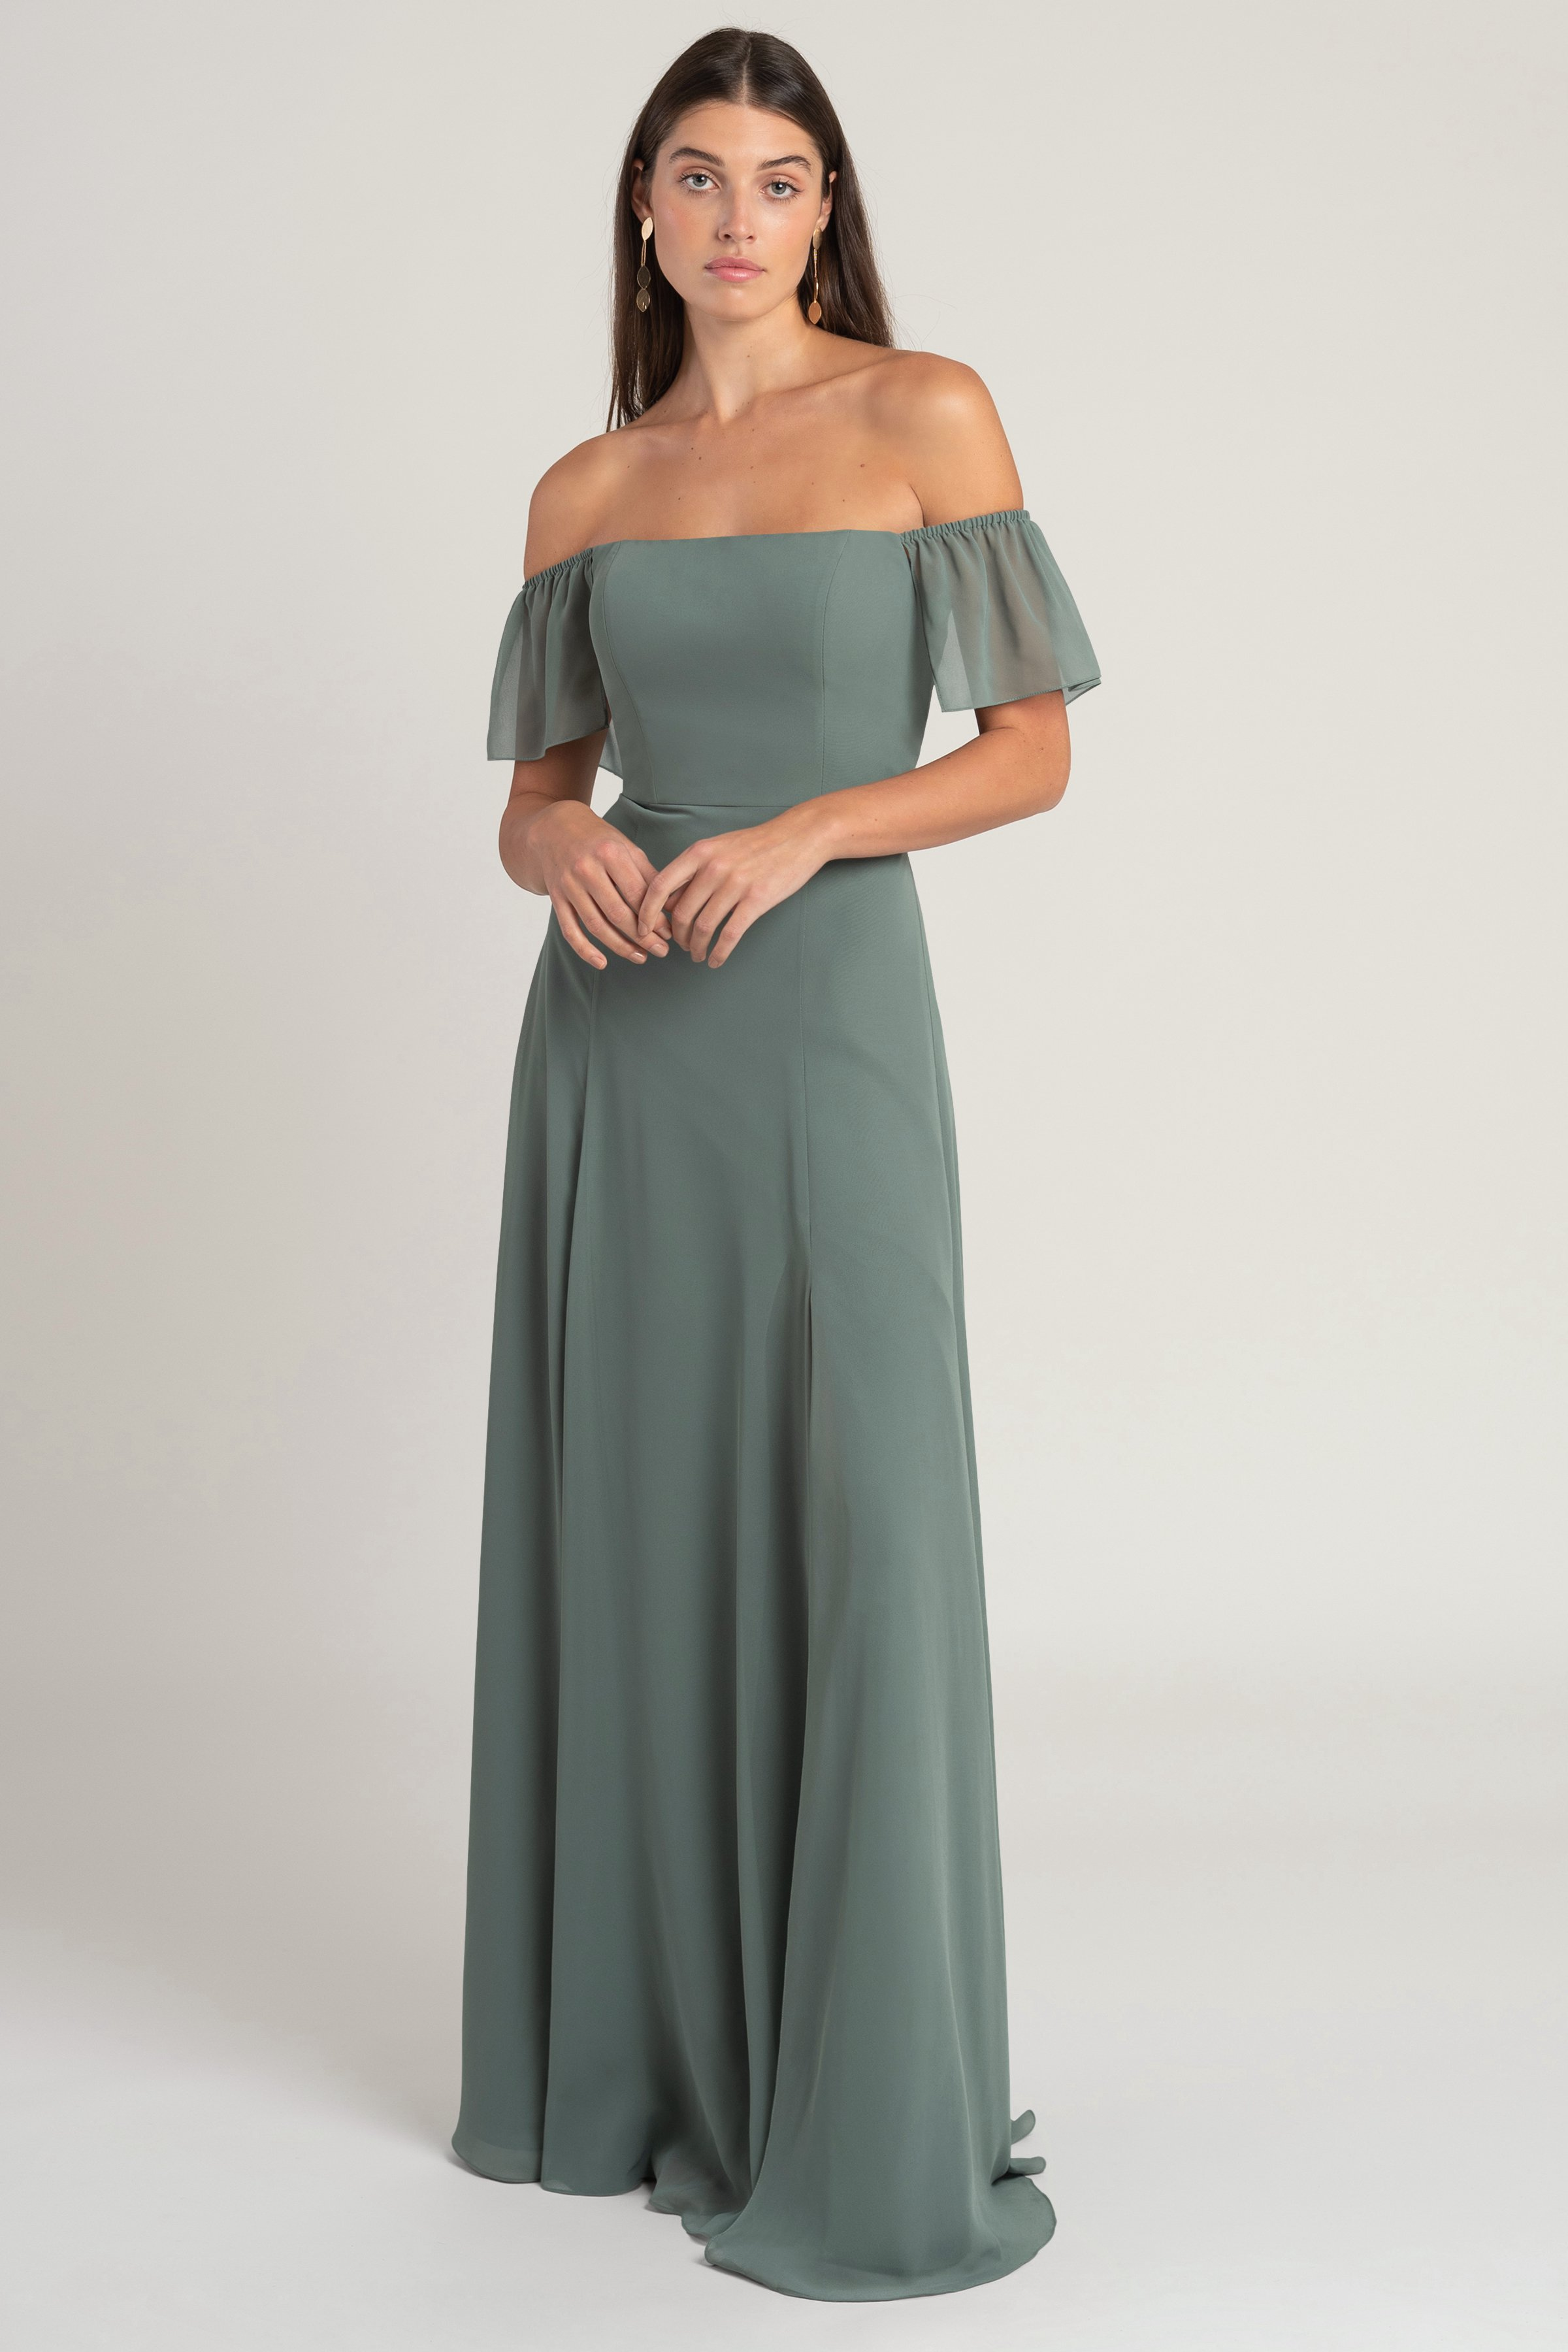 The Elsie is an off the shoulder flutter sleeve chiffon bridesmaid dress that takes a modern approach to romance. The skirt has beautiful movement while remaining slim through the hips for an incredibly flattering silhouette. The addition of a side slit adds one more flirty touch.